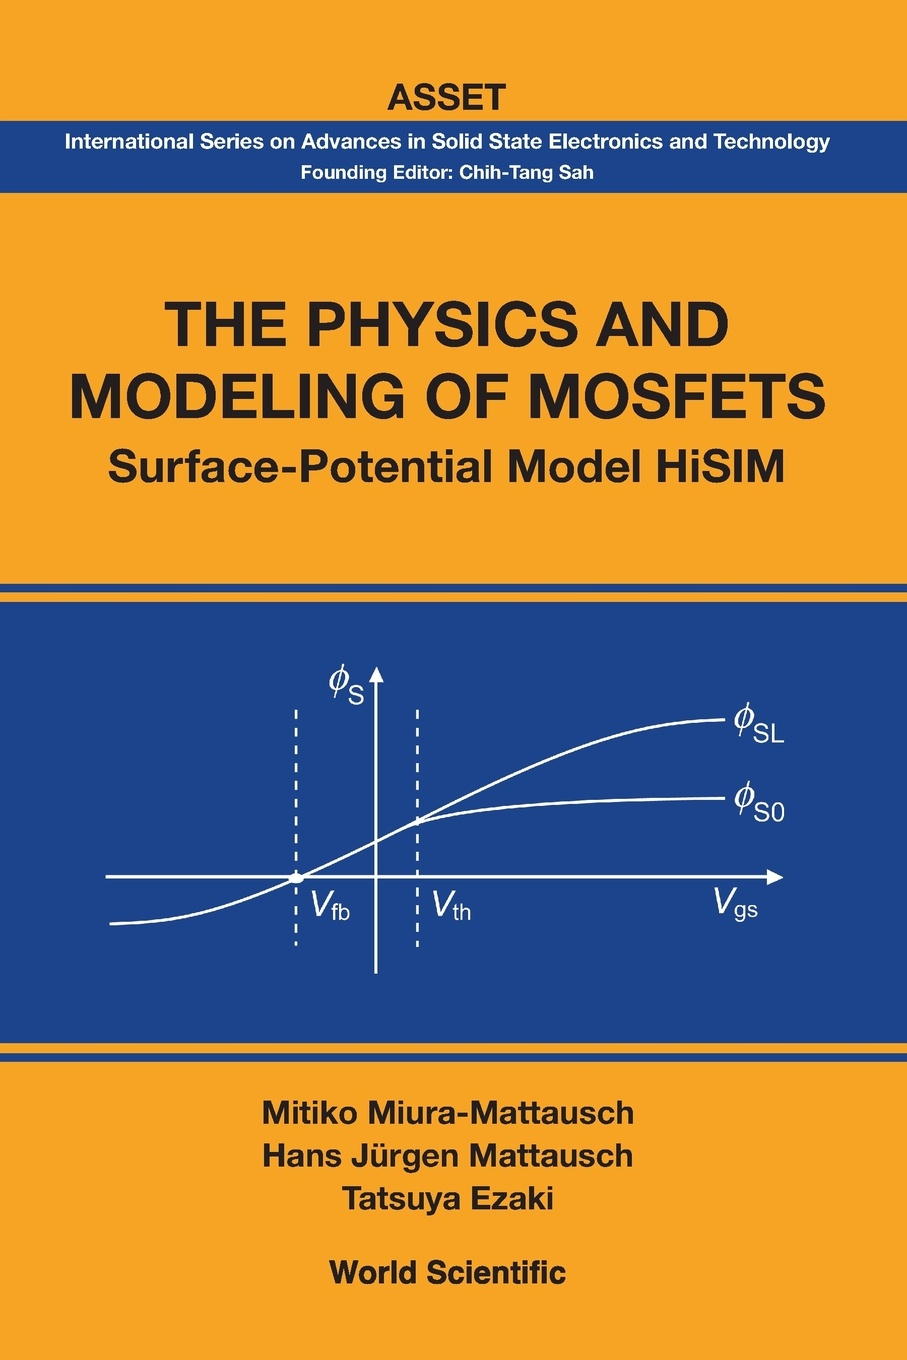 Mitiko Miura-Mattausch, Hans Jurgen Mattausch, Tatsuya Ezaki PHYSICS AND MODELING OF MOSFETS, THE. SURFACE-POTENTIAL MODEL HISIM free shipping 100pcs bc847b sot 23 original npn transistor sot23 bc847 transistor diodes smd npn general purpose transistors